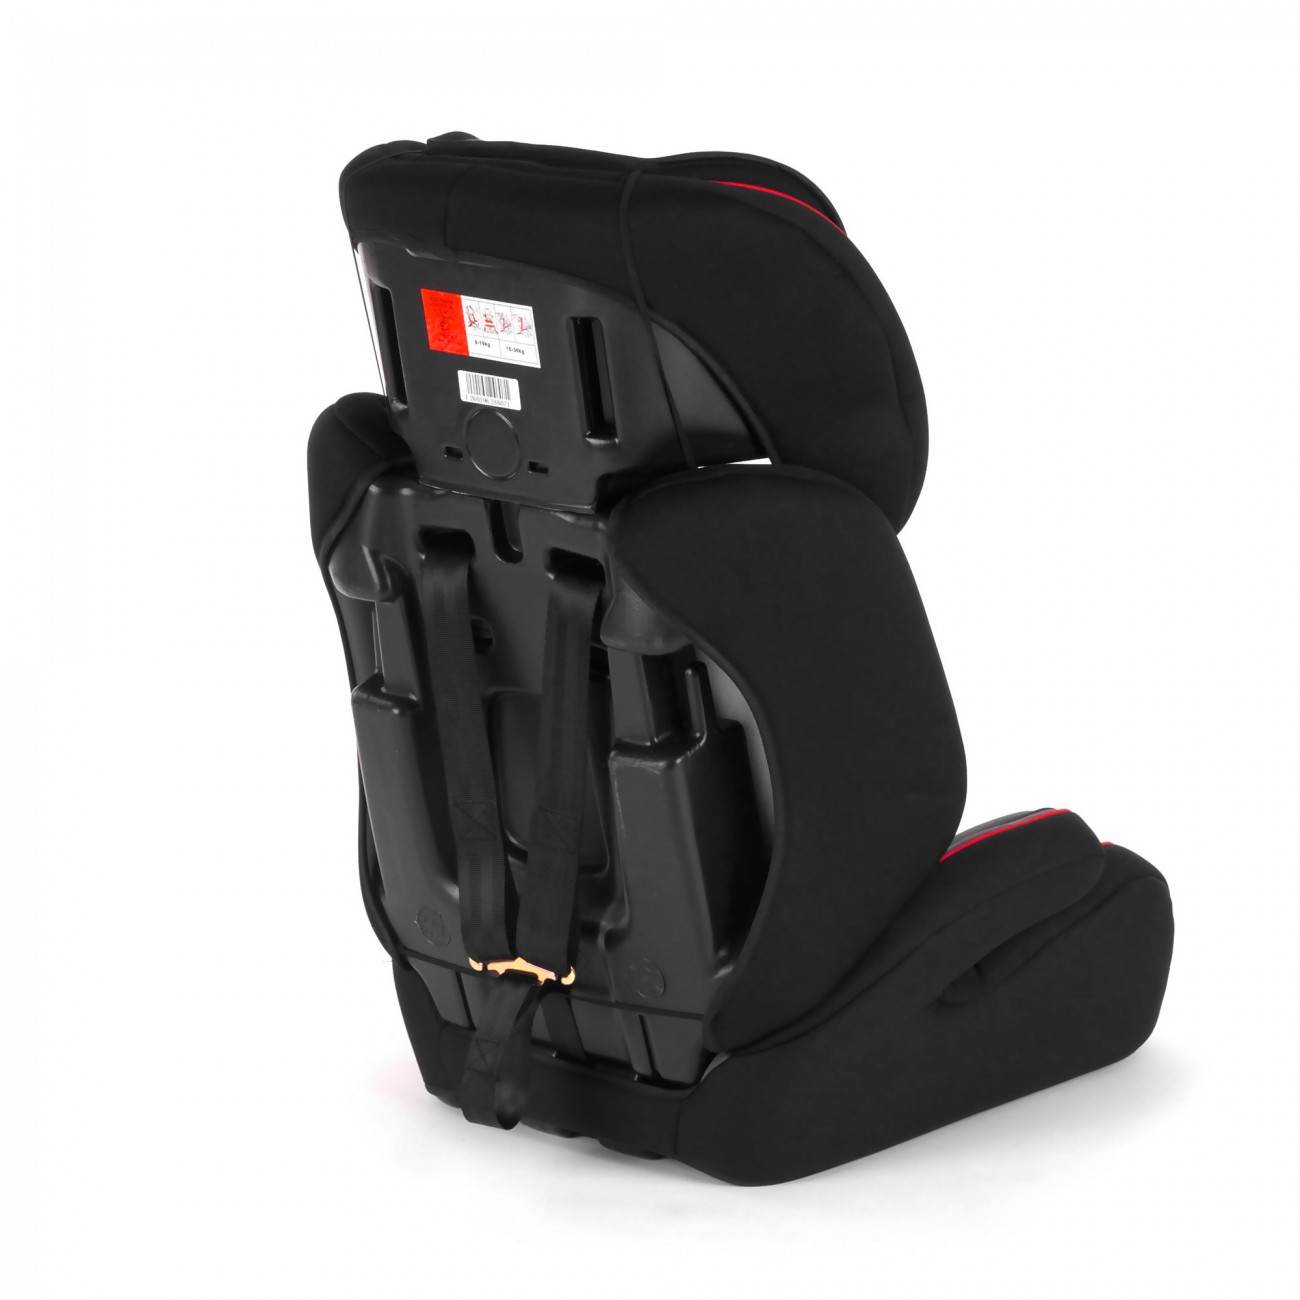 Baby vivo si ge auto pour enfants tom groupe 1 2 3 de 9 for Siege auto 1 2